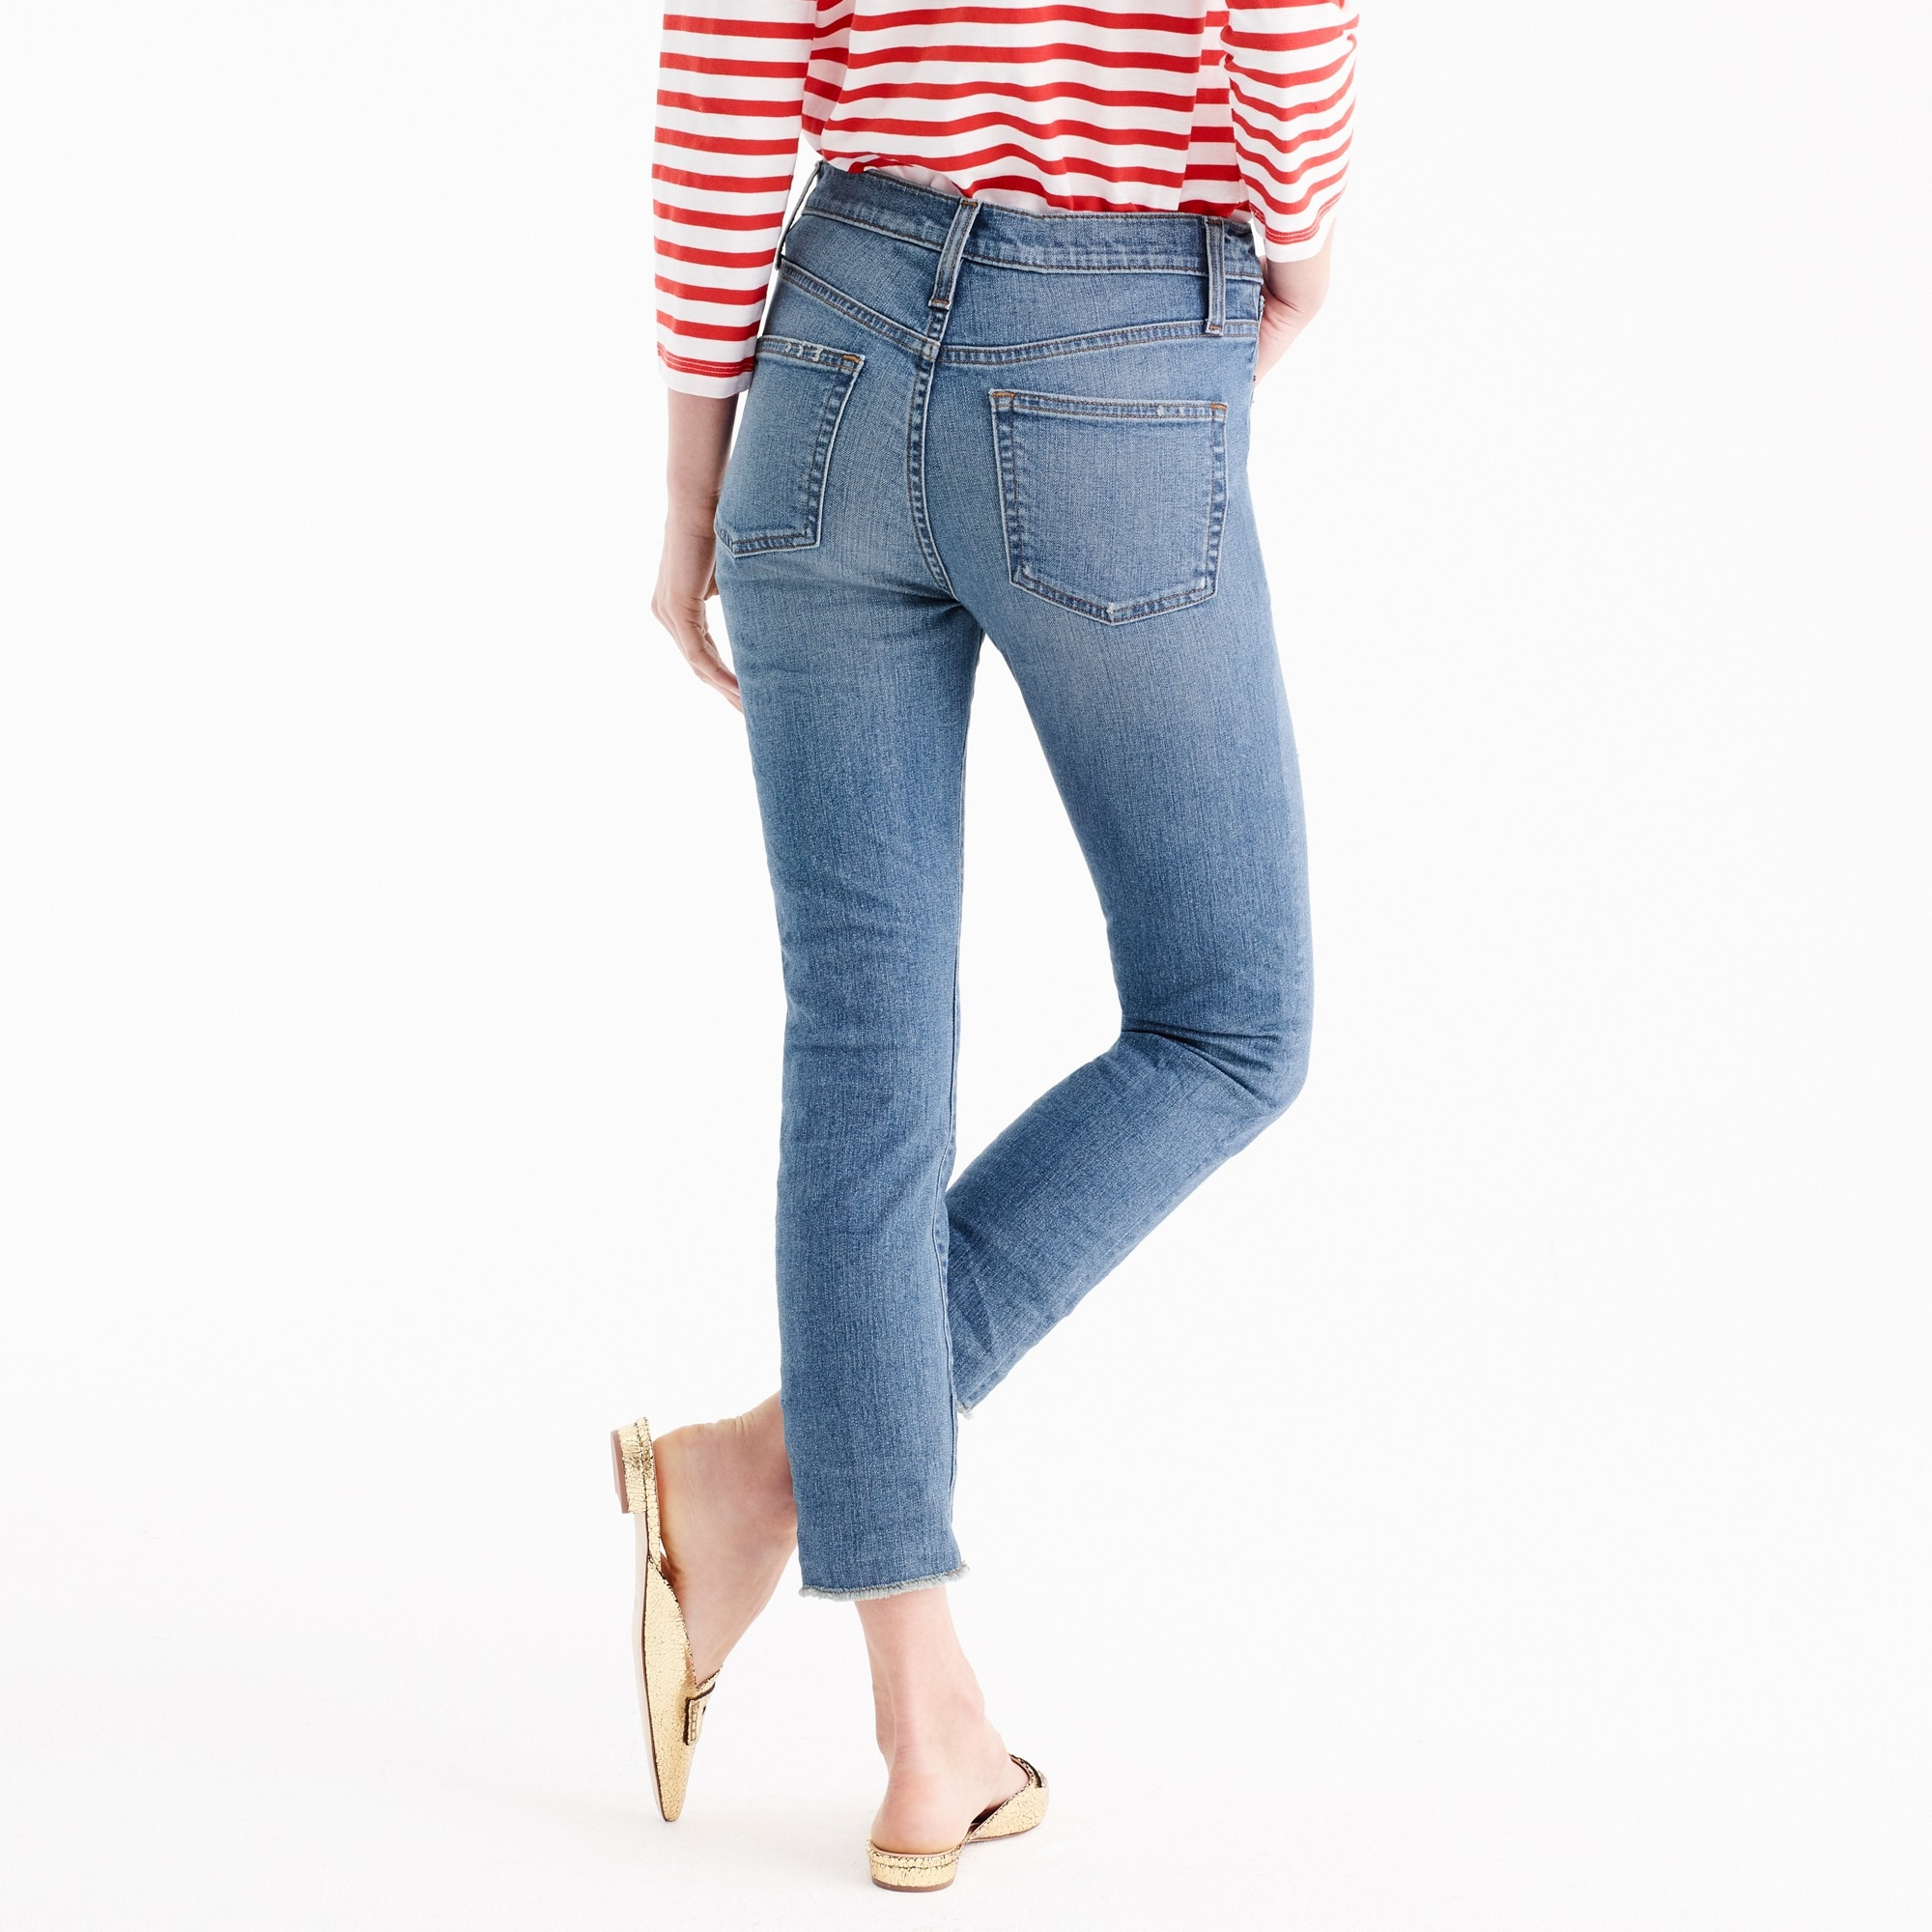 Image 3 for Tall vintage crop jean in Landers wash